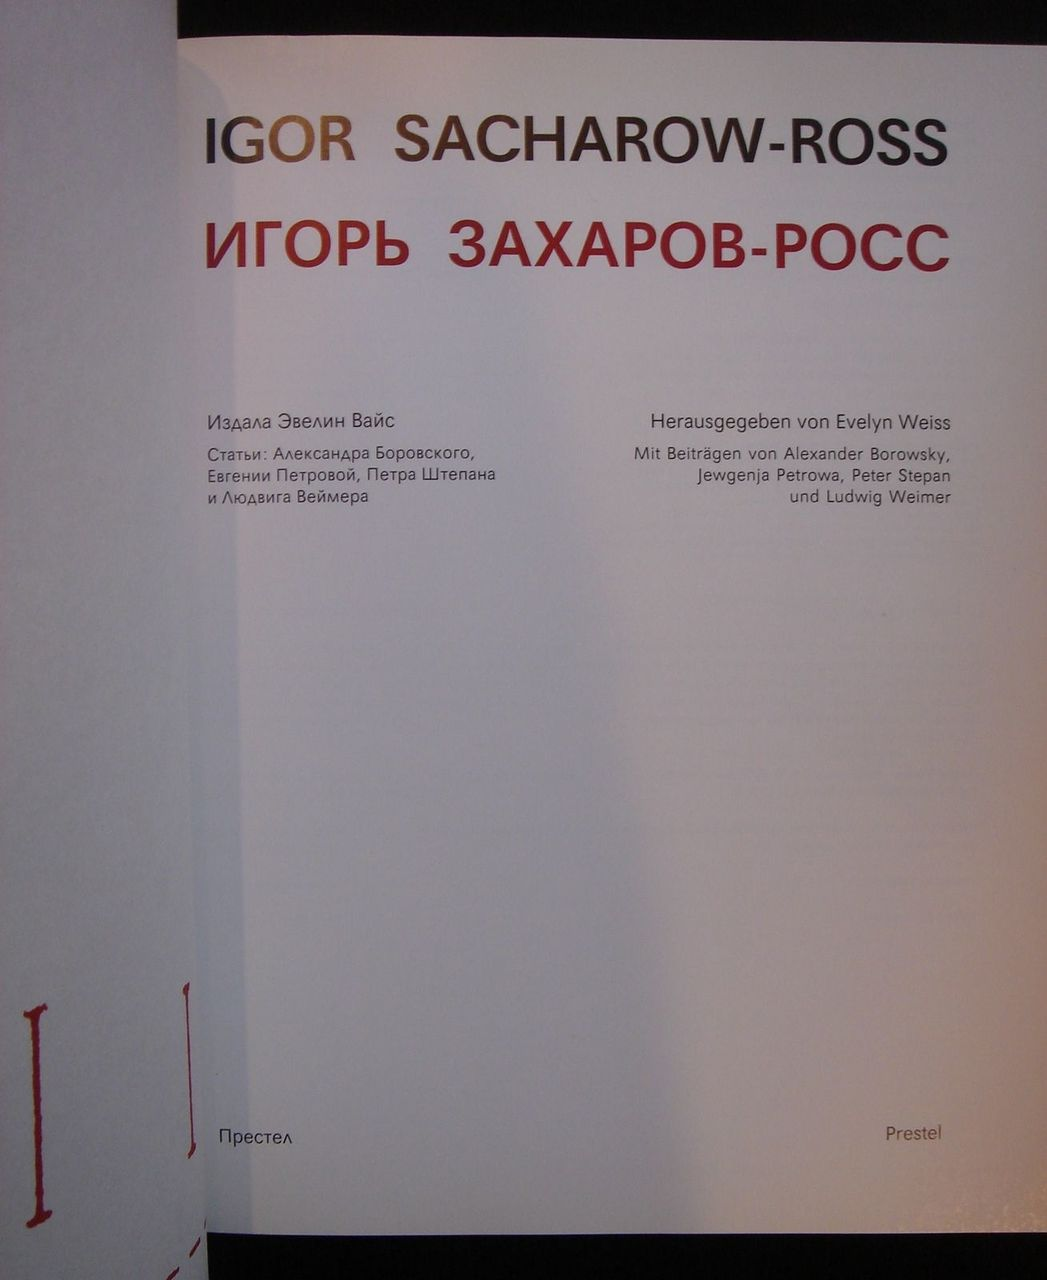 IGOR SACHAROW-ROSS, by Prestel - 1993